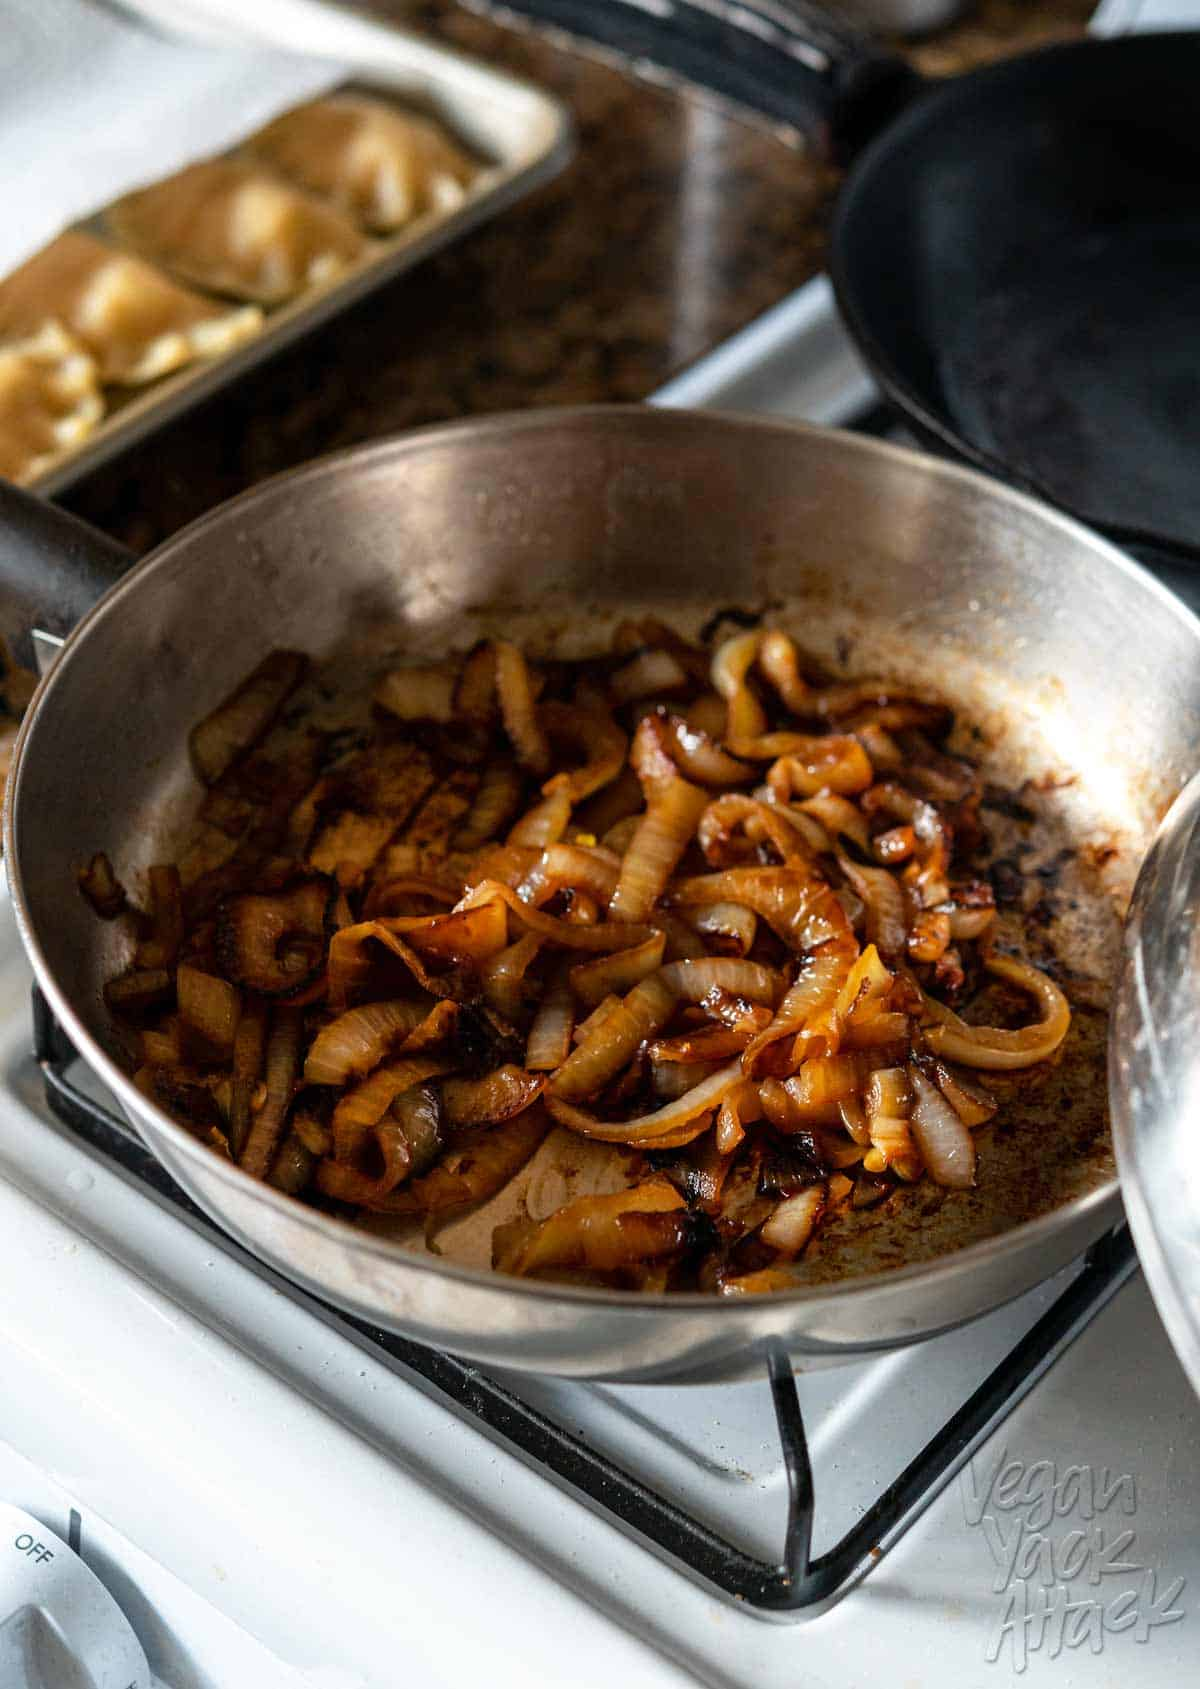 Image of pan full of caramelized onions